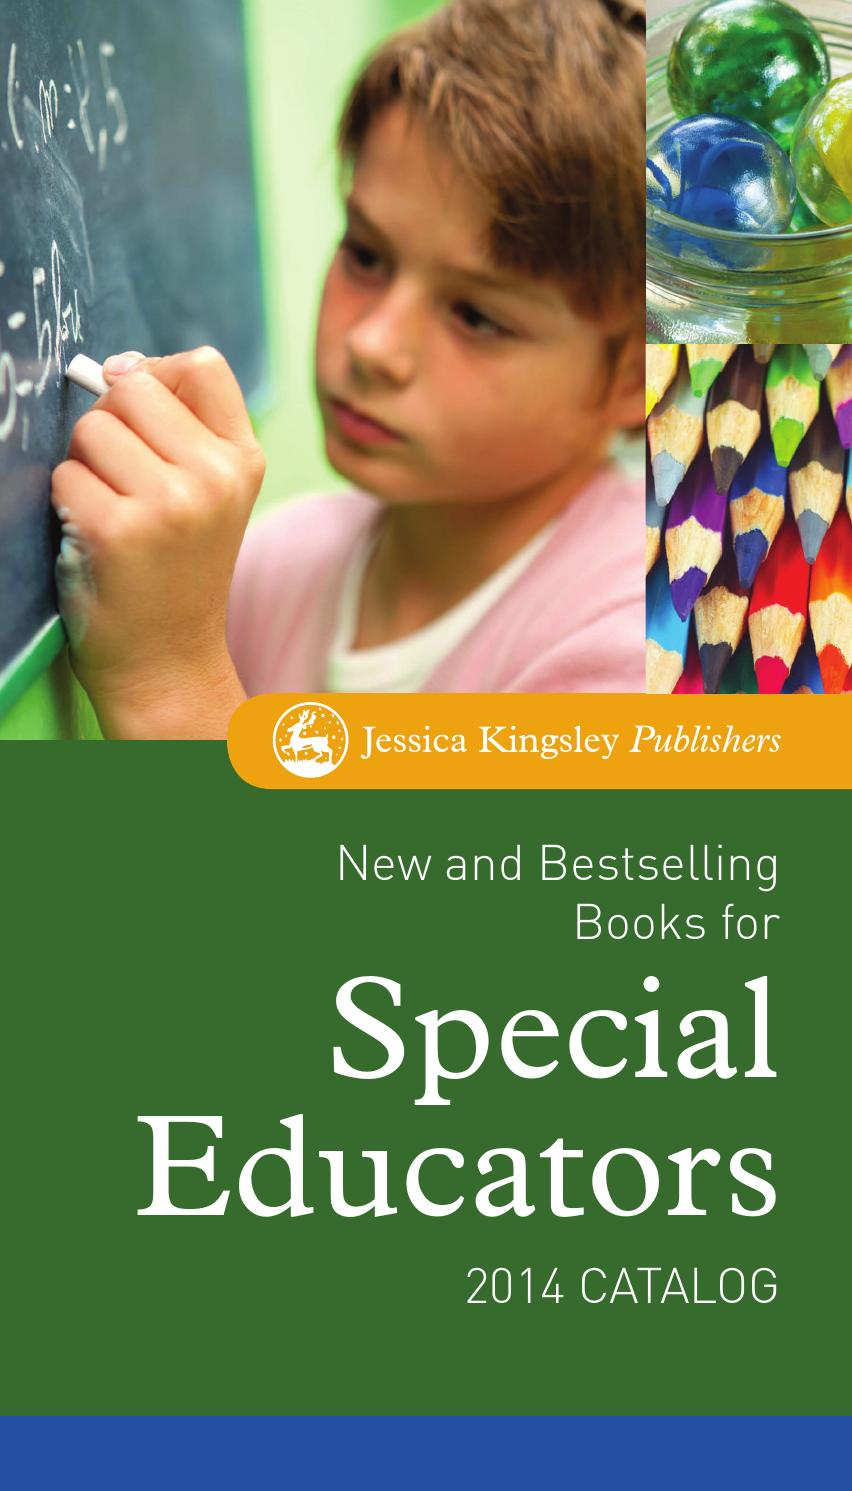 New and Bestselling Books for Special Educators 2014 Catalog by Jessica  Kingsley Publishers - issuu